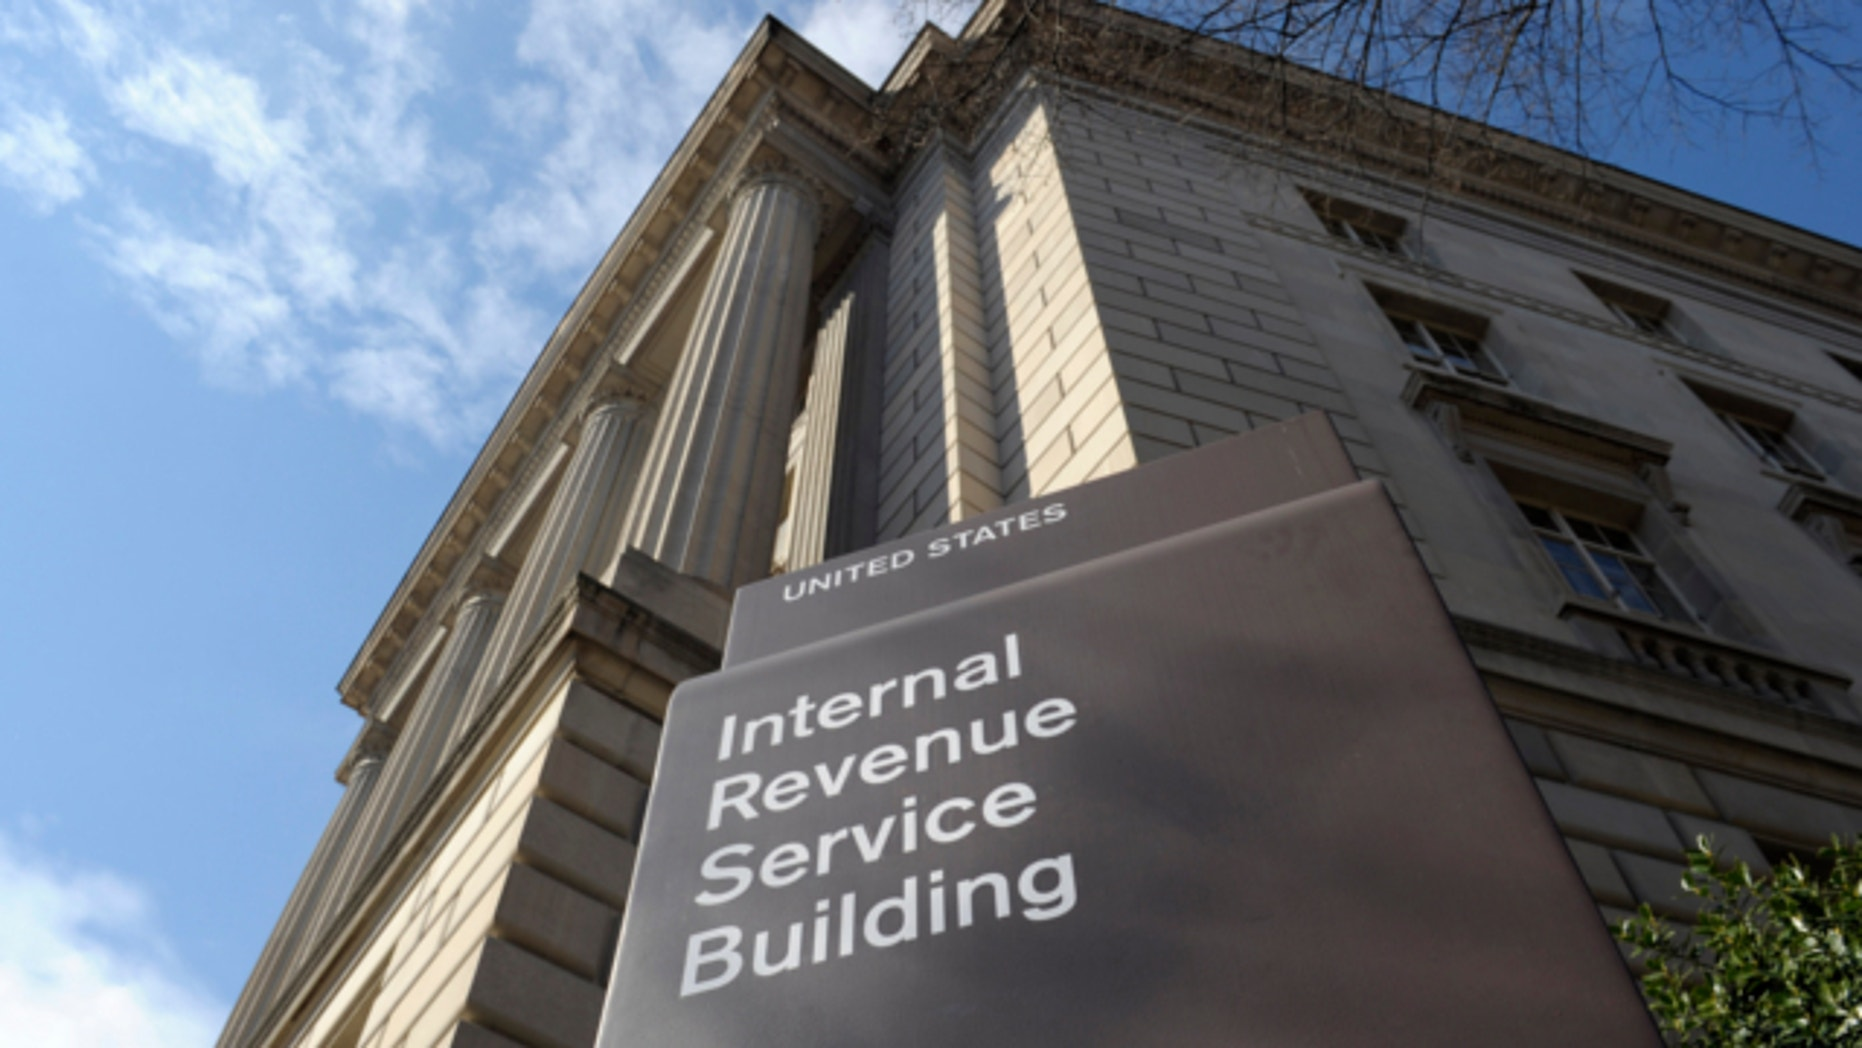 March 22, 2013: This photo shows the exterior of the Internal Revenue Service building in Washington.